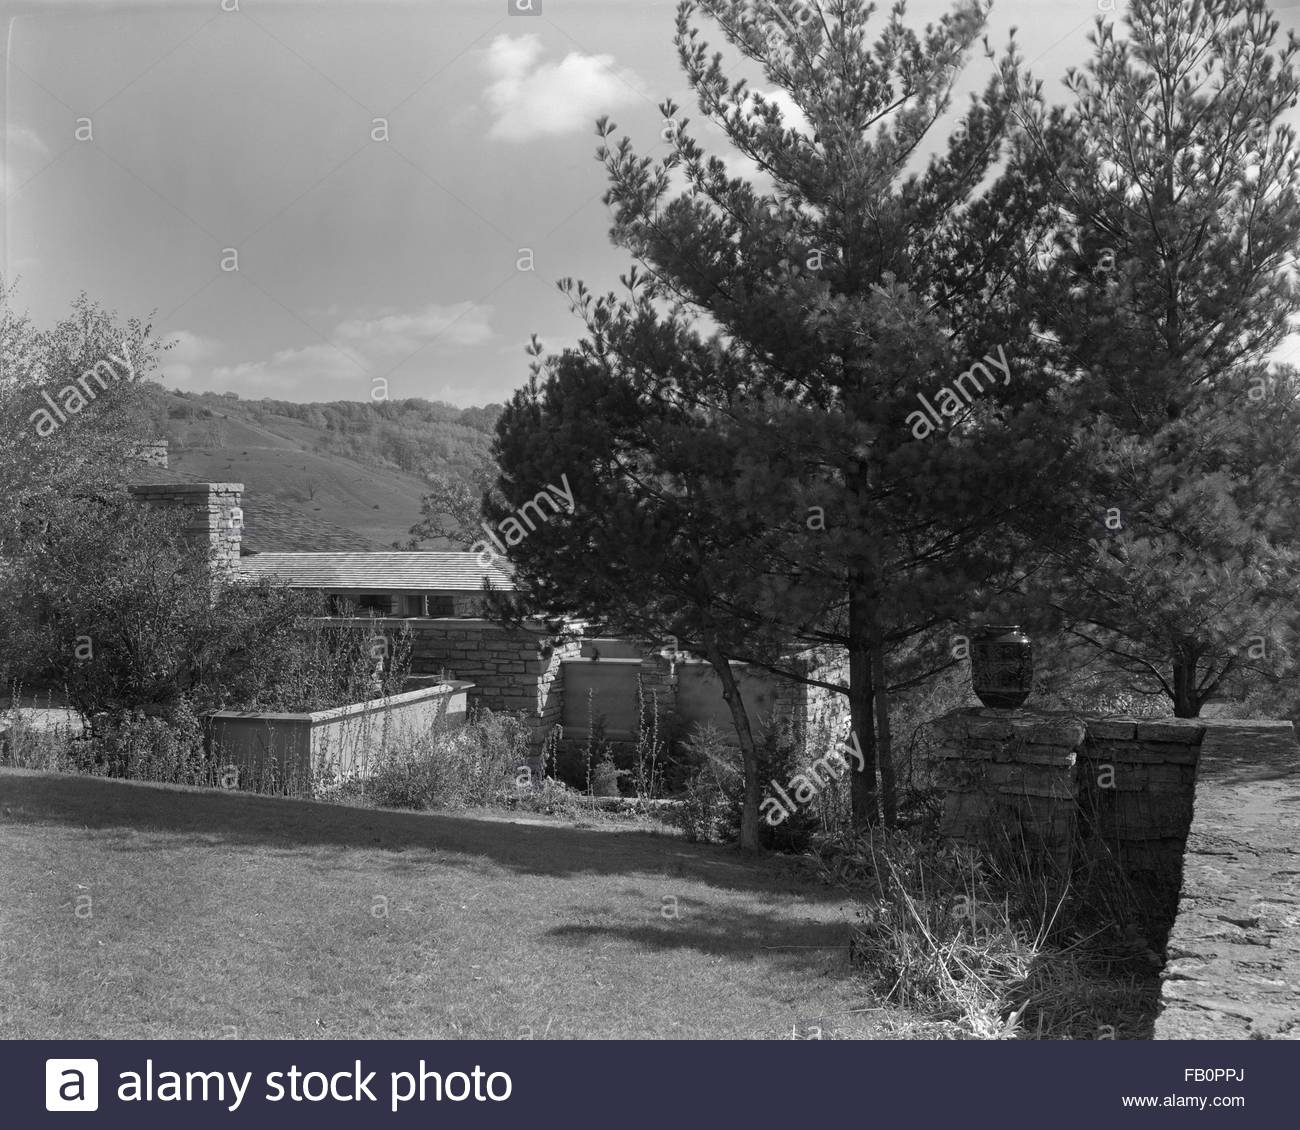 Taliesin East in Spring Green (Wis.), 1937 Dec. Exterior property. - Stock Image